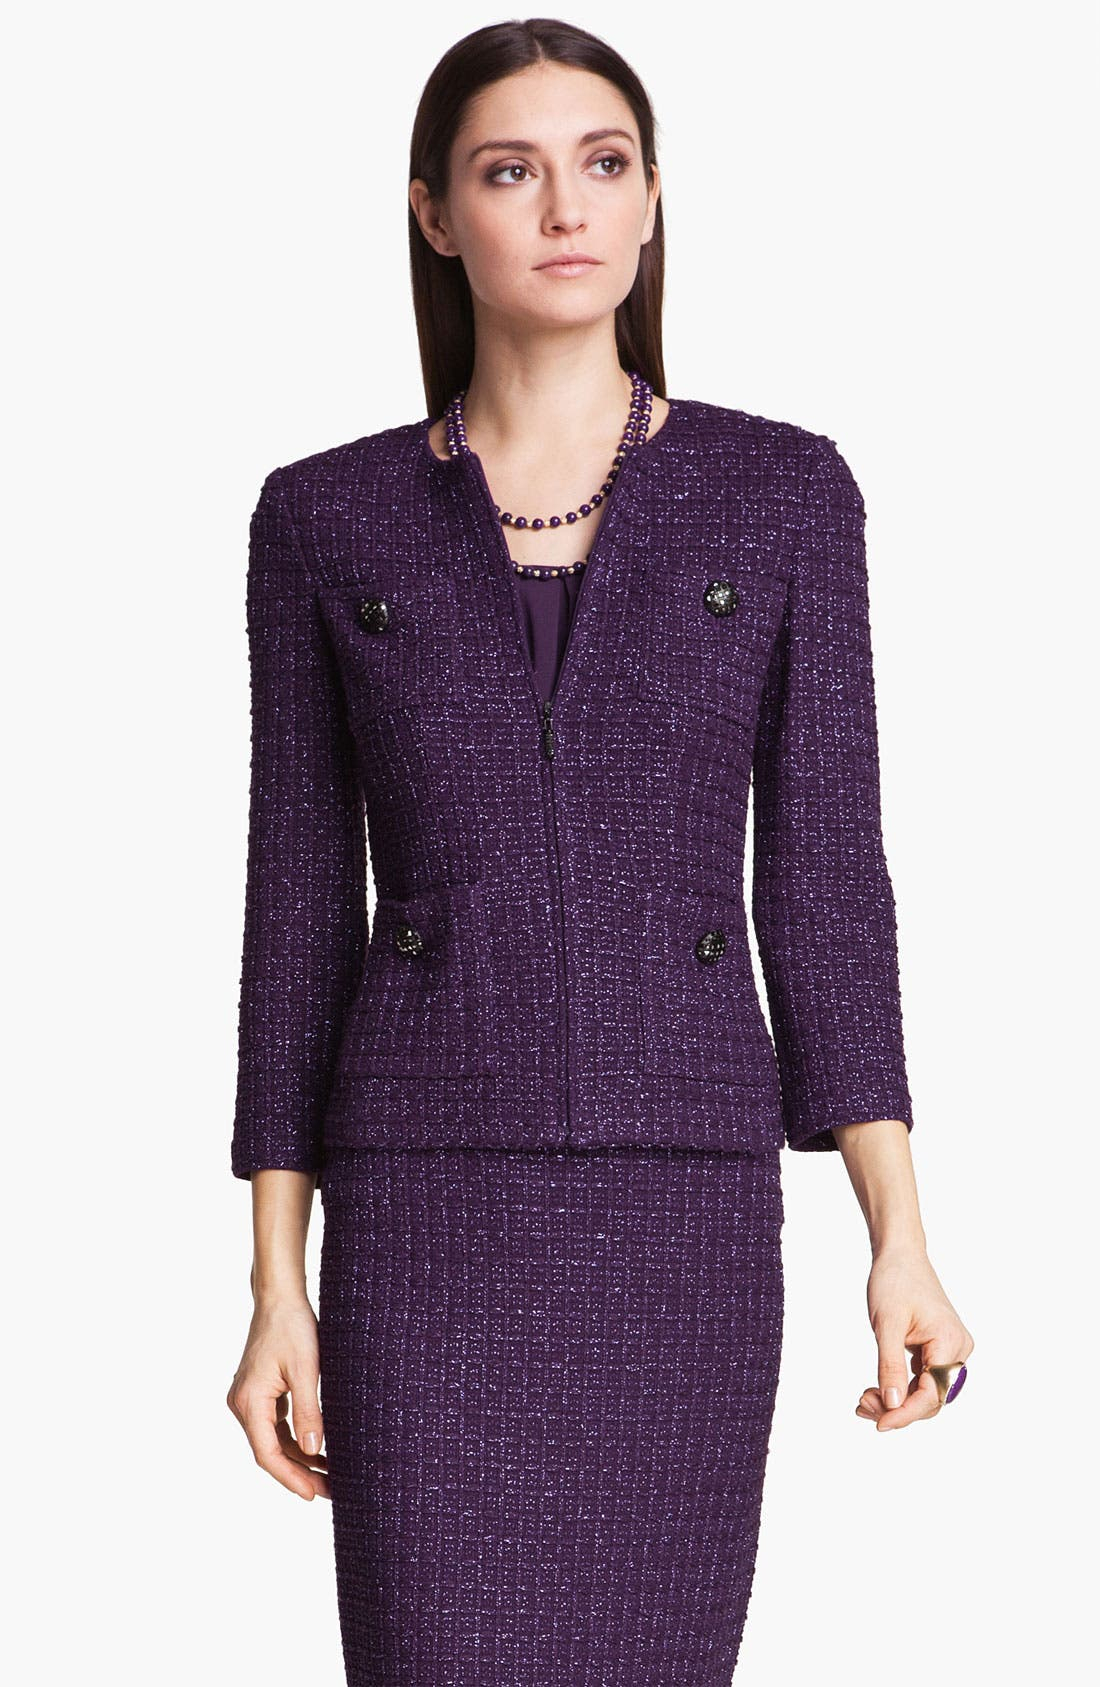 Main Image - St. John Collection Shimmer Tweed Jacket